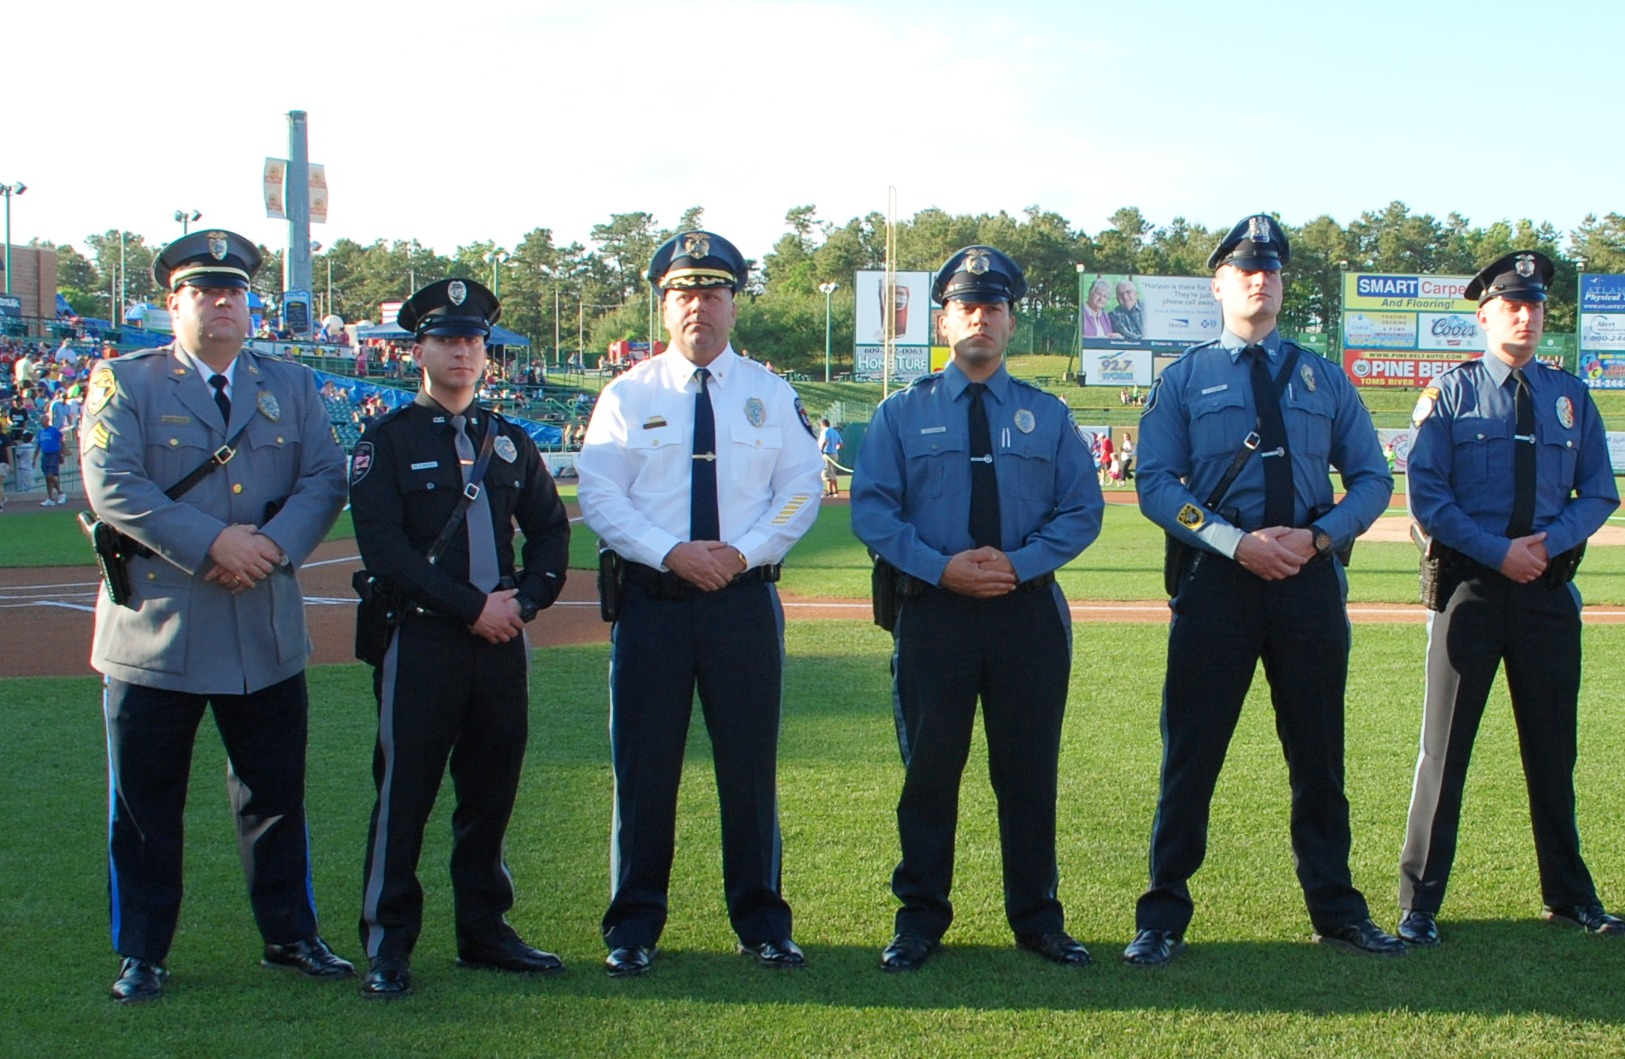 Chief Paprota & Officer Tsarnas at Blue Claws Stadium Awards Ceremony - June 2013